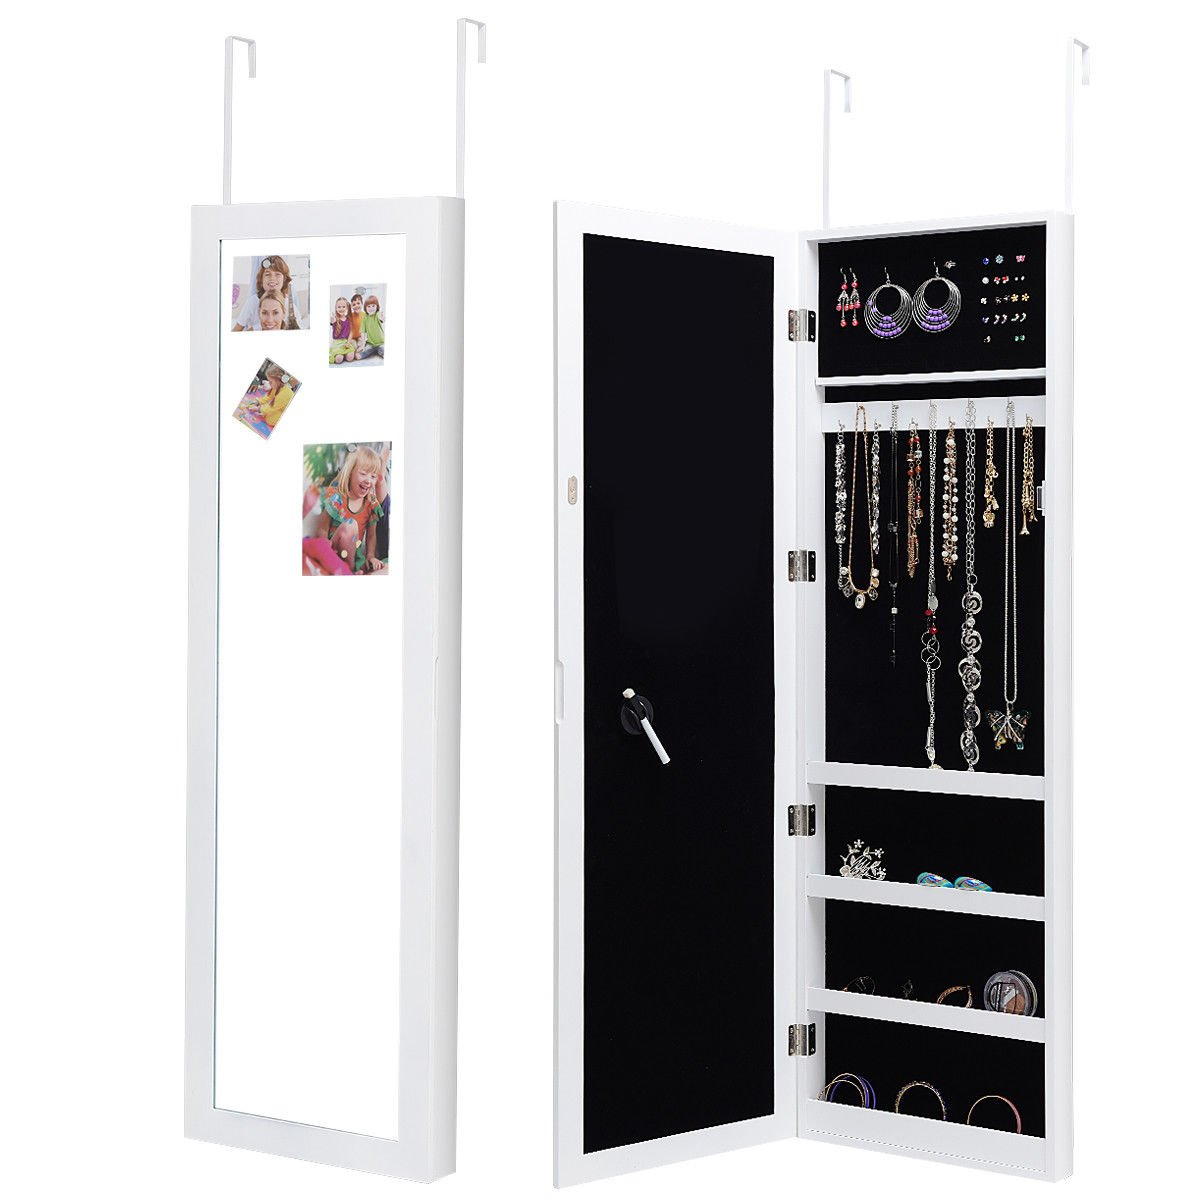 Giantex Wall Door Mounted Jewelry Cabinet Armoire for Girls Mirrored Magnetic Storage Organizer Hanging Jewelry Armoire w/Pen, Pen Holder,Magnets (White)